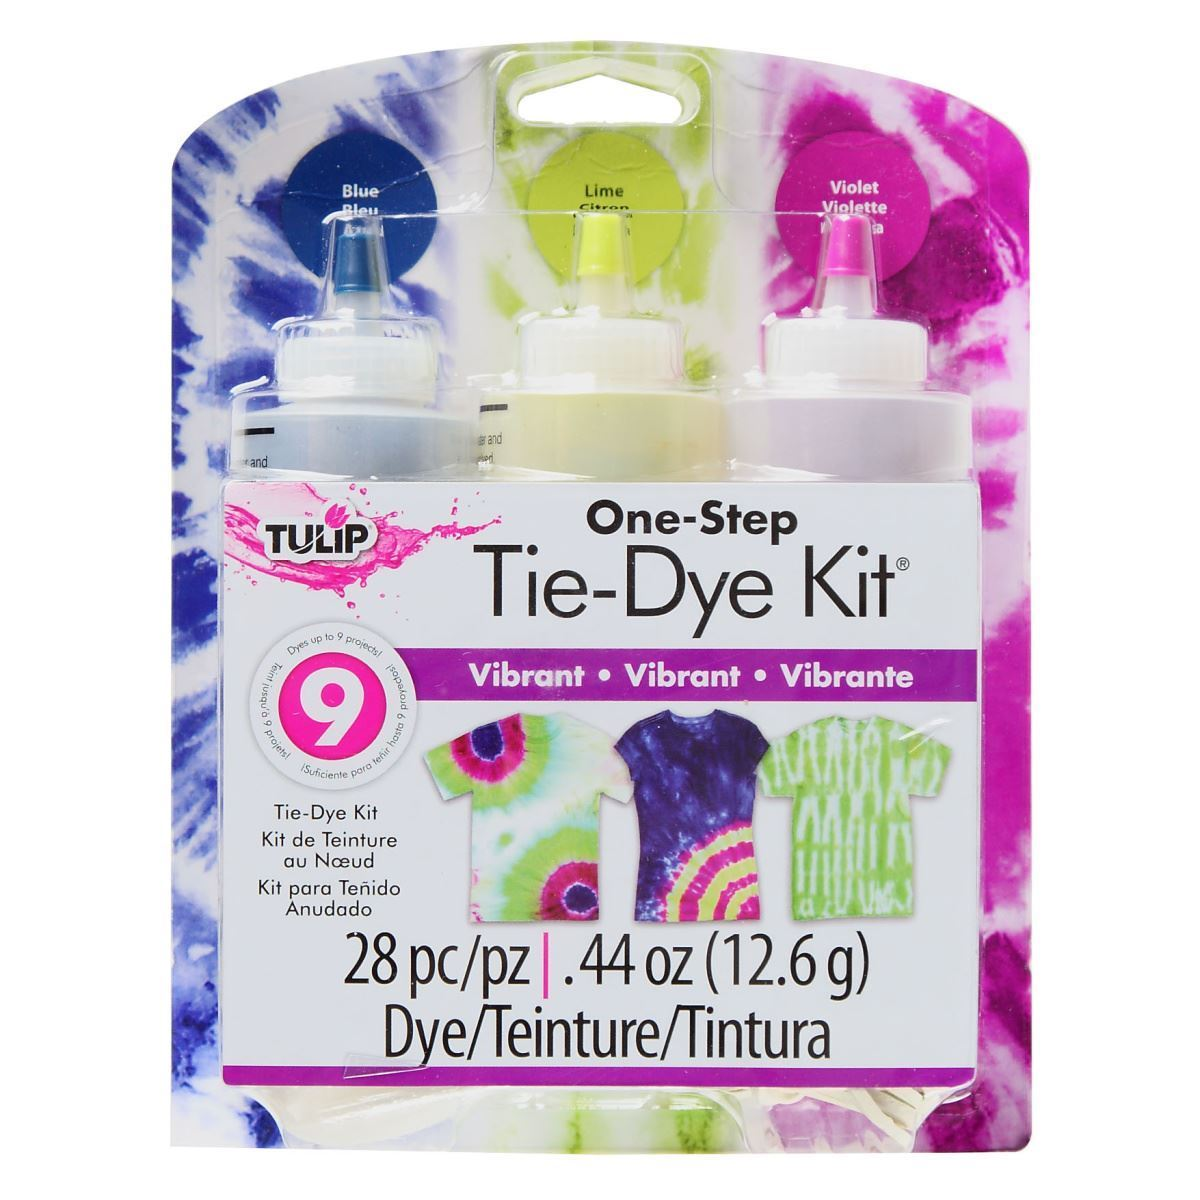 Tie Dye Your Summer Tulip One Step Vibrant Tie Dye Kit